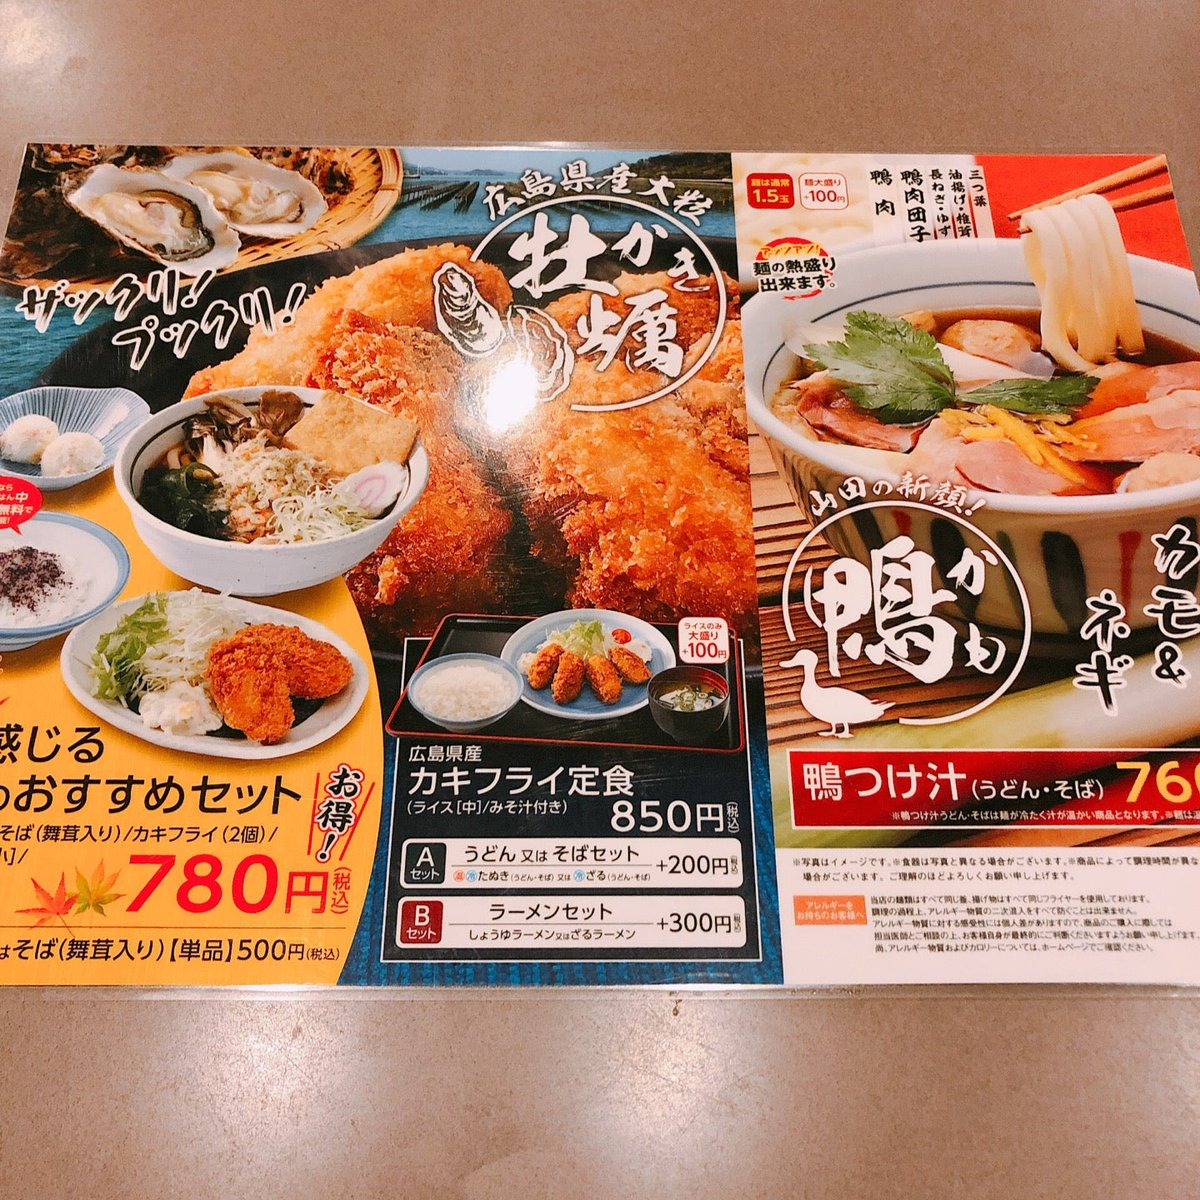 test ツイッターメディア - I'm at 山田うどん 蓮田店 in 蓮田市, 埼玉県 https://t.co/aXh5gtO2HB https://t.co/H4ajgpjQS2